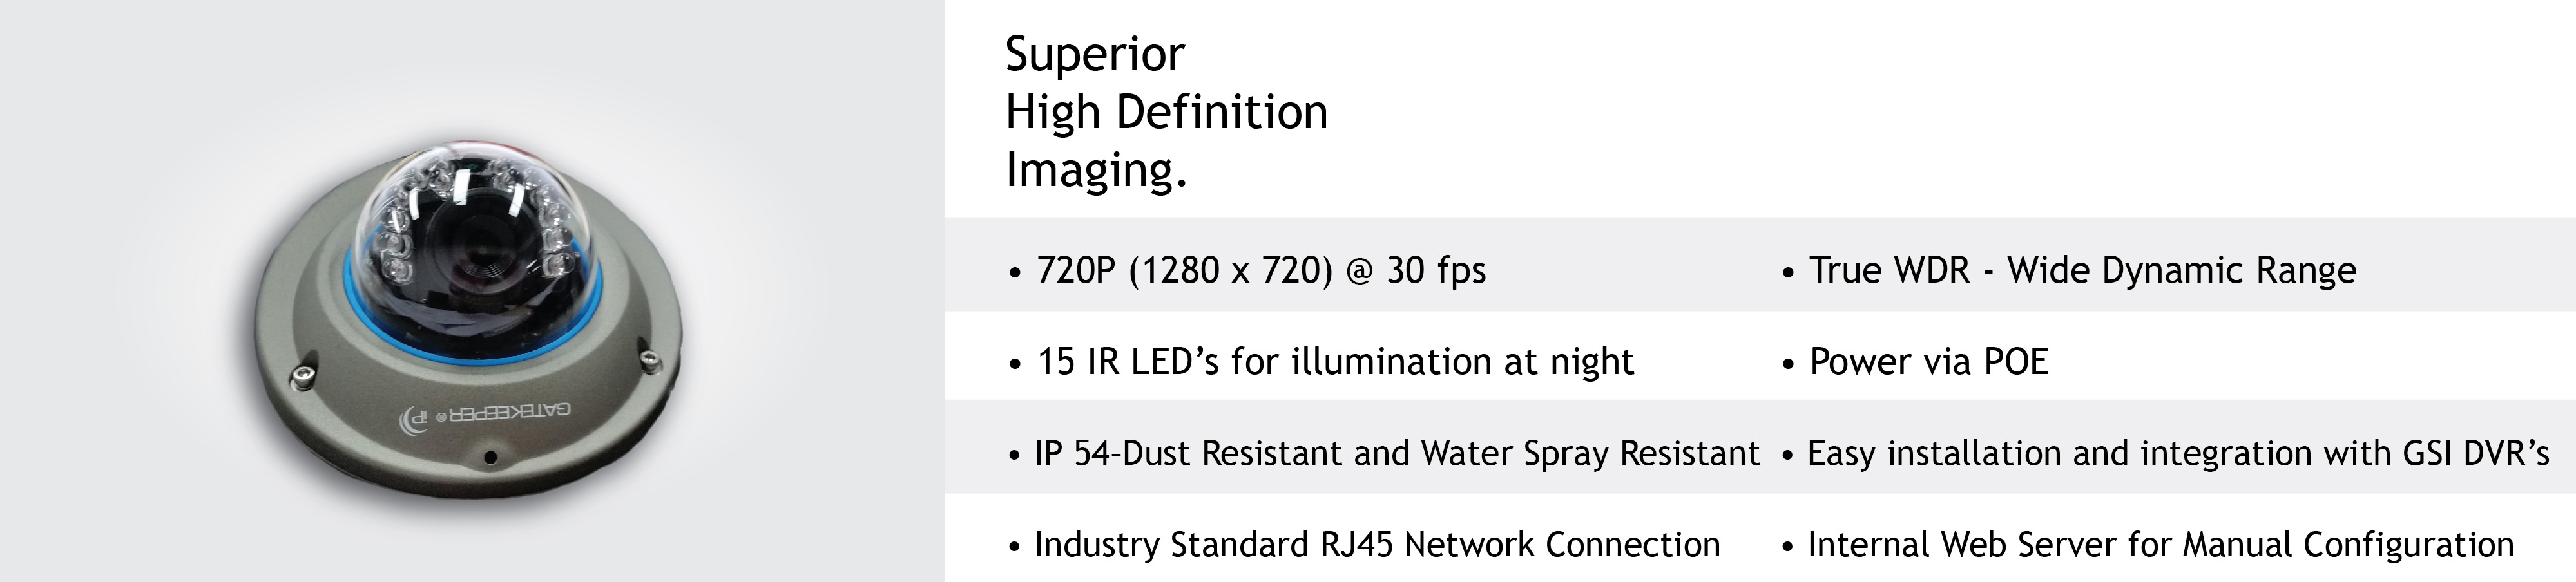 ProductPNH-G4-D211-LIGHT